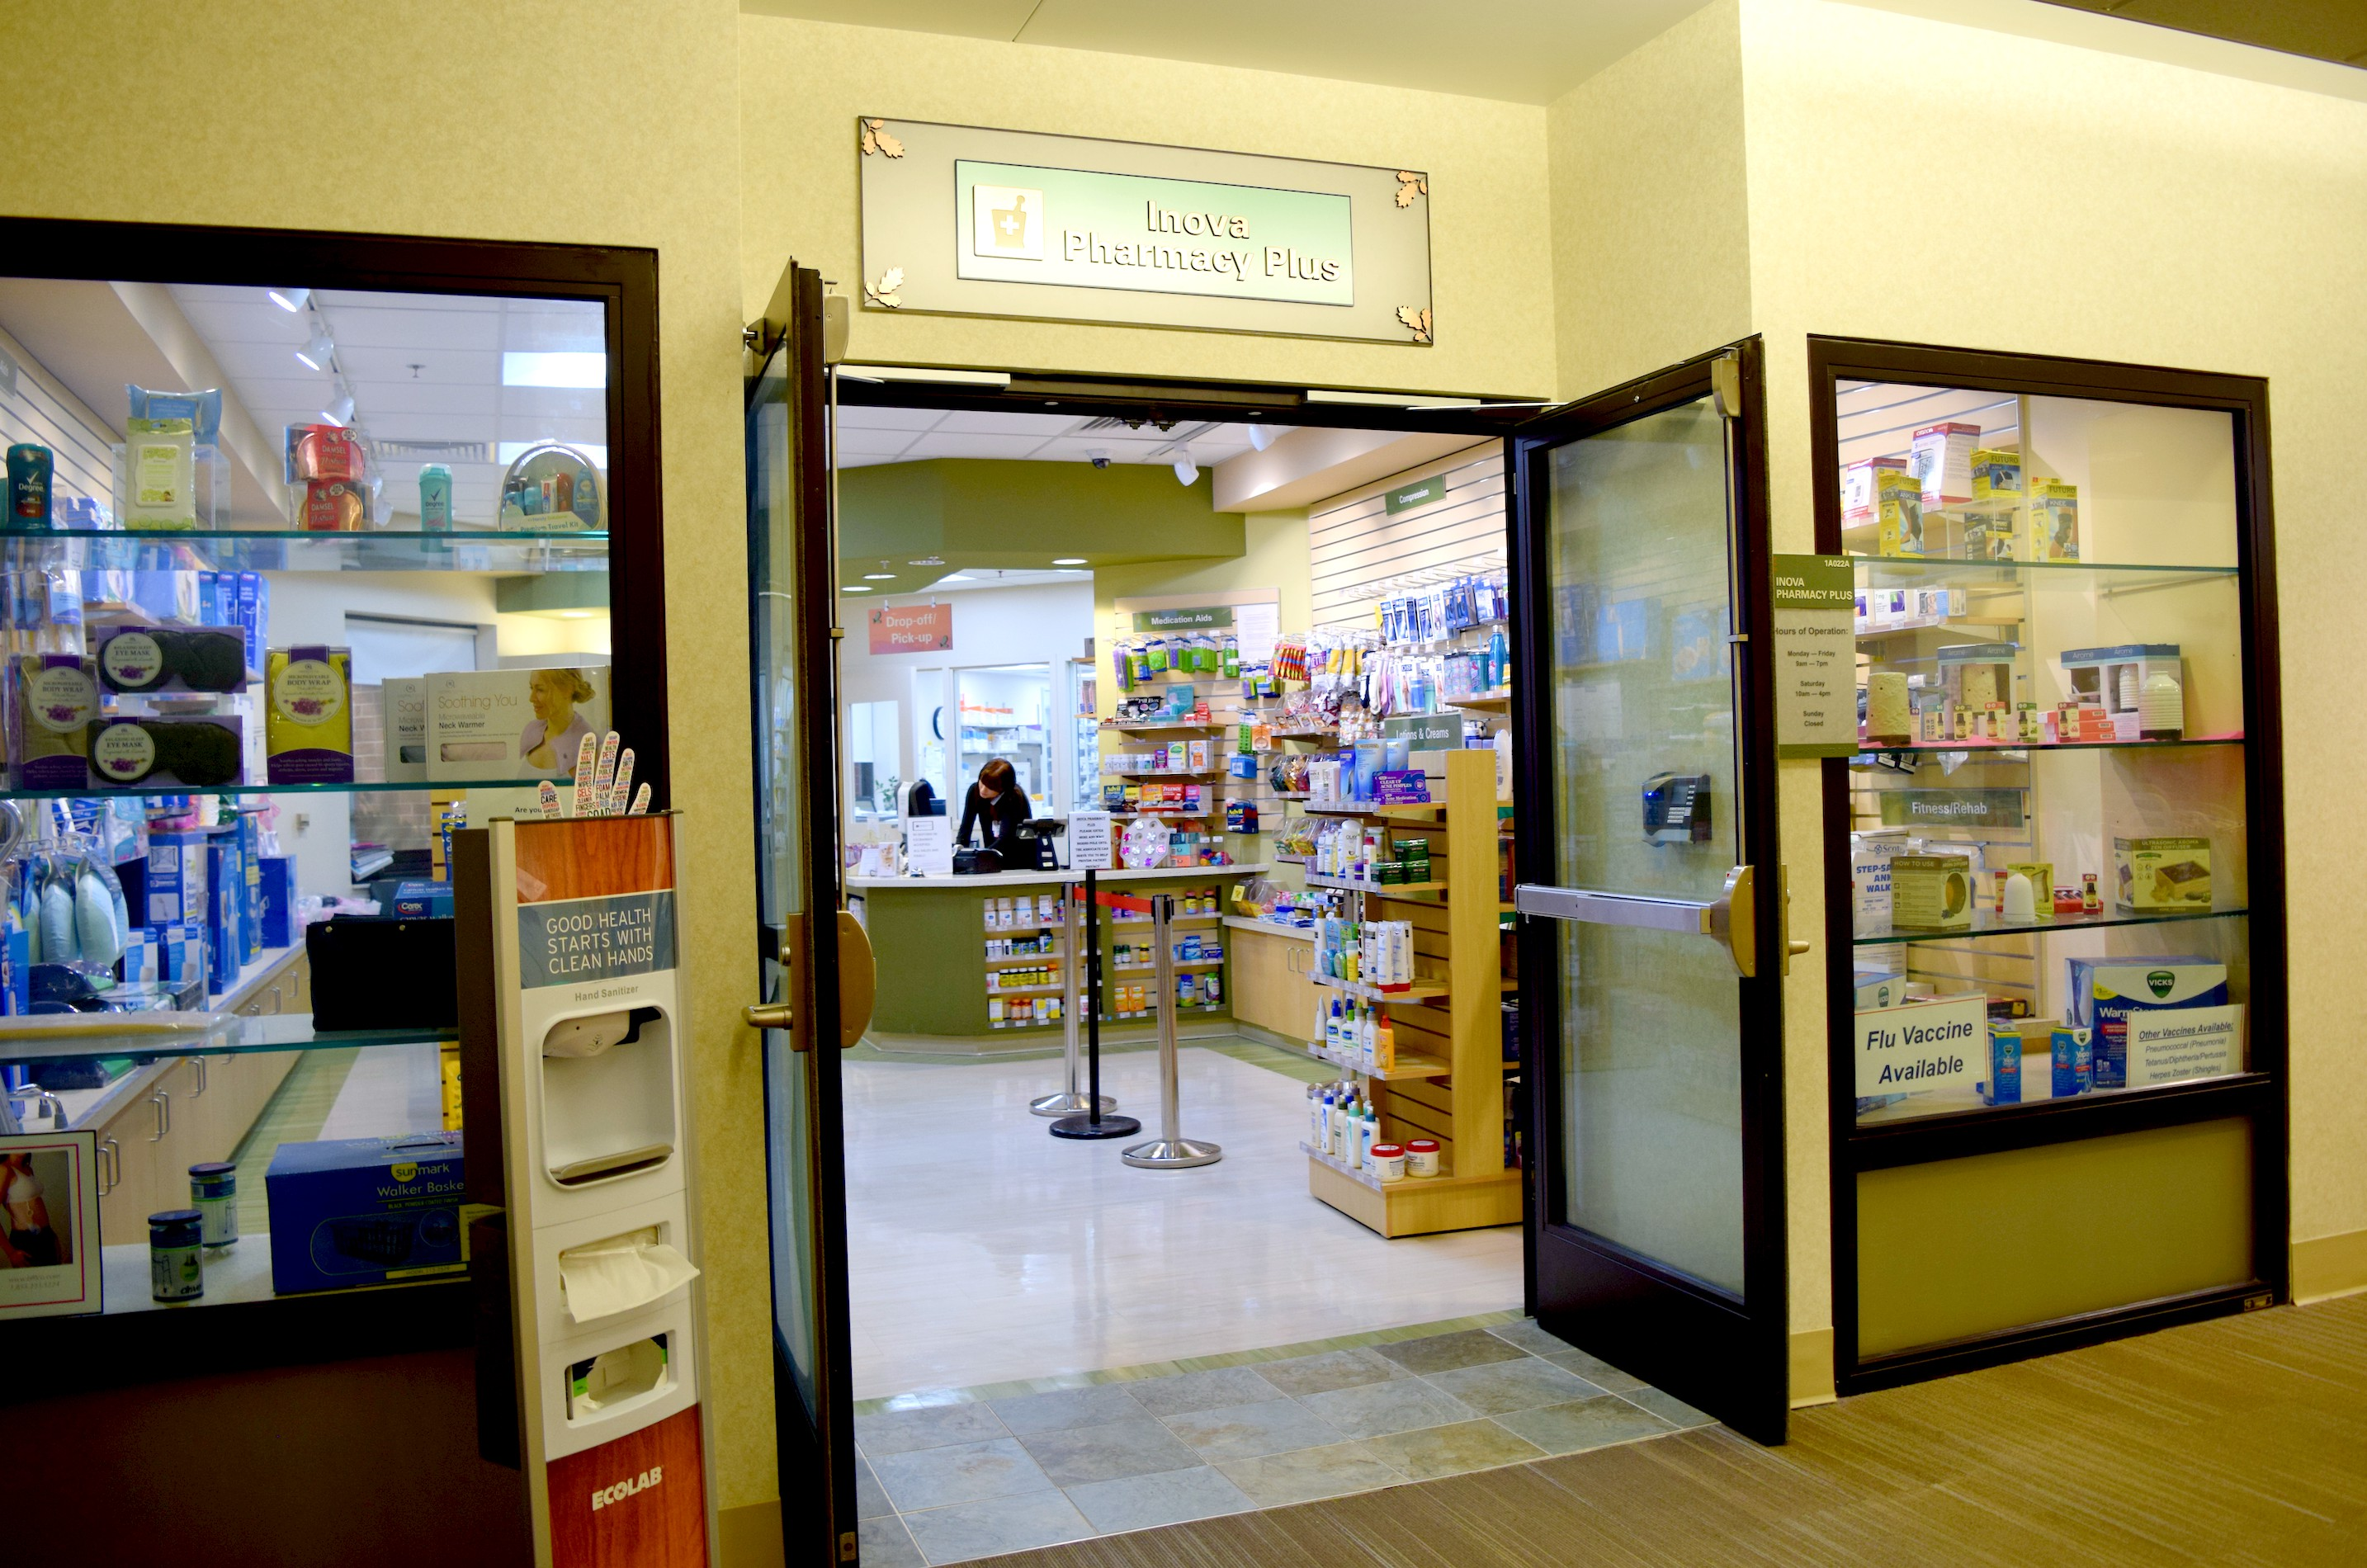 Inova Pharmacy Plus at Fair Oaks in Fairfax, Virginia is one of many designated locations where you can find the LifeInCheck drug disposal receptacle to dispose of your unused or expired drugs properly. Learn more at www.hipmamasplace.com! #AD #CollectiveBias #LICDrugDisposal